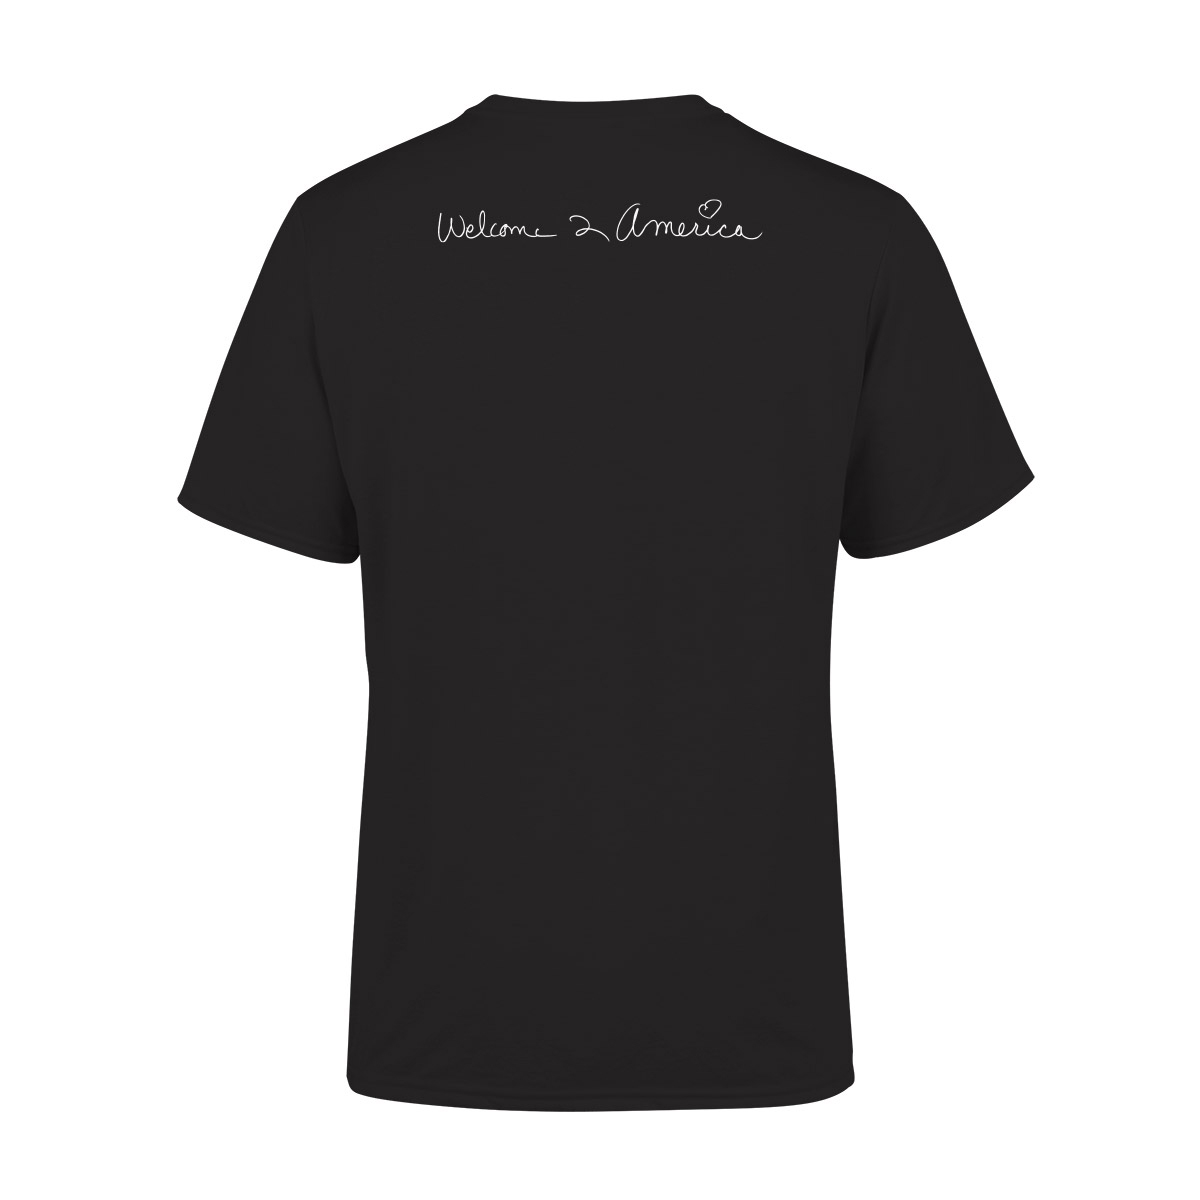 Welcome 2 America Silhouette T-Shirt